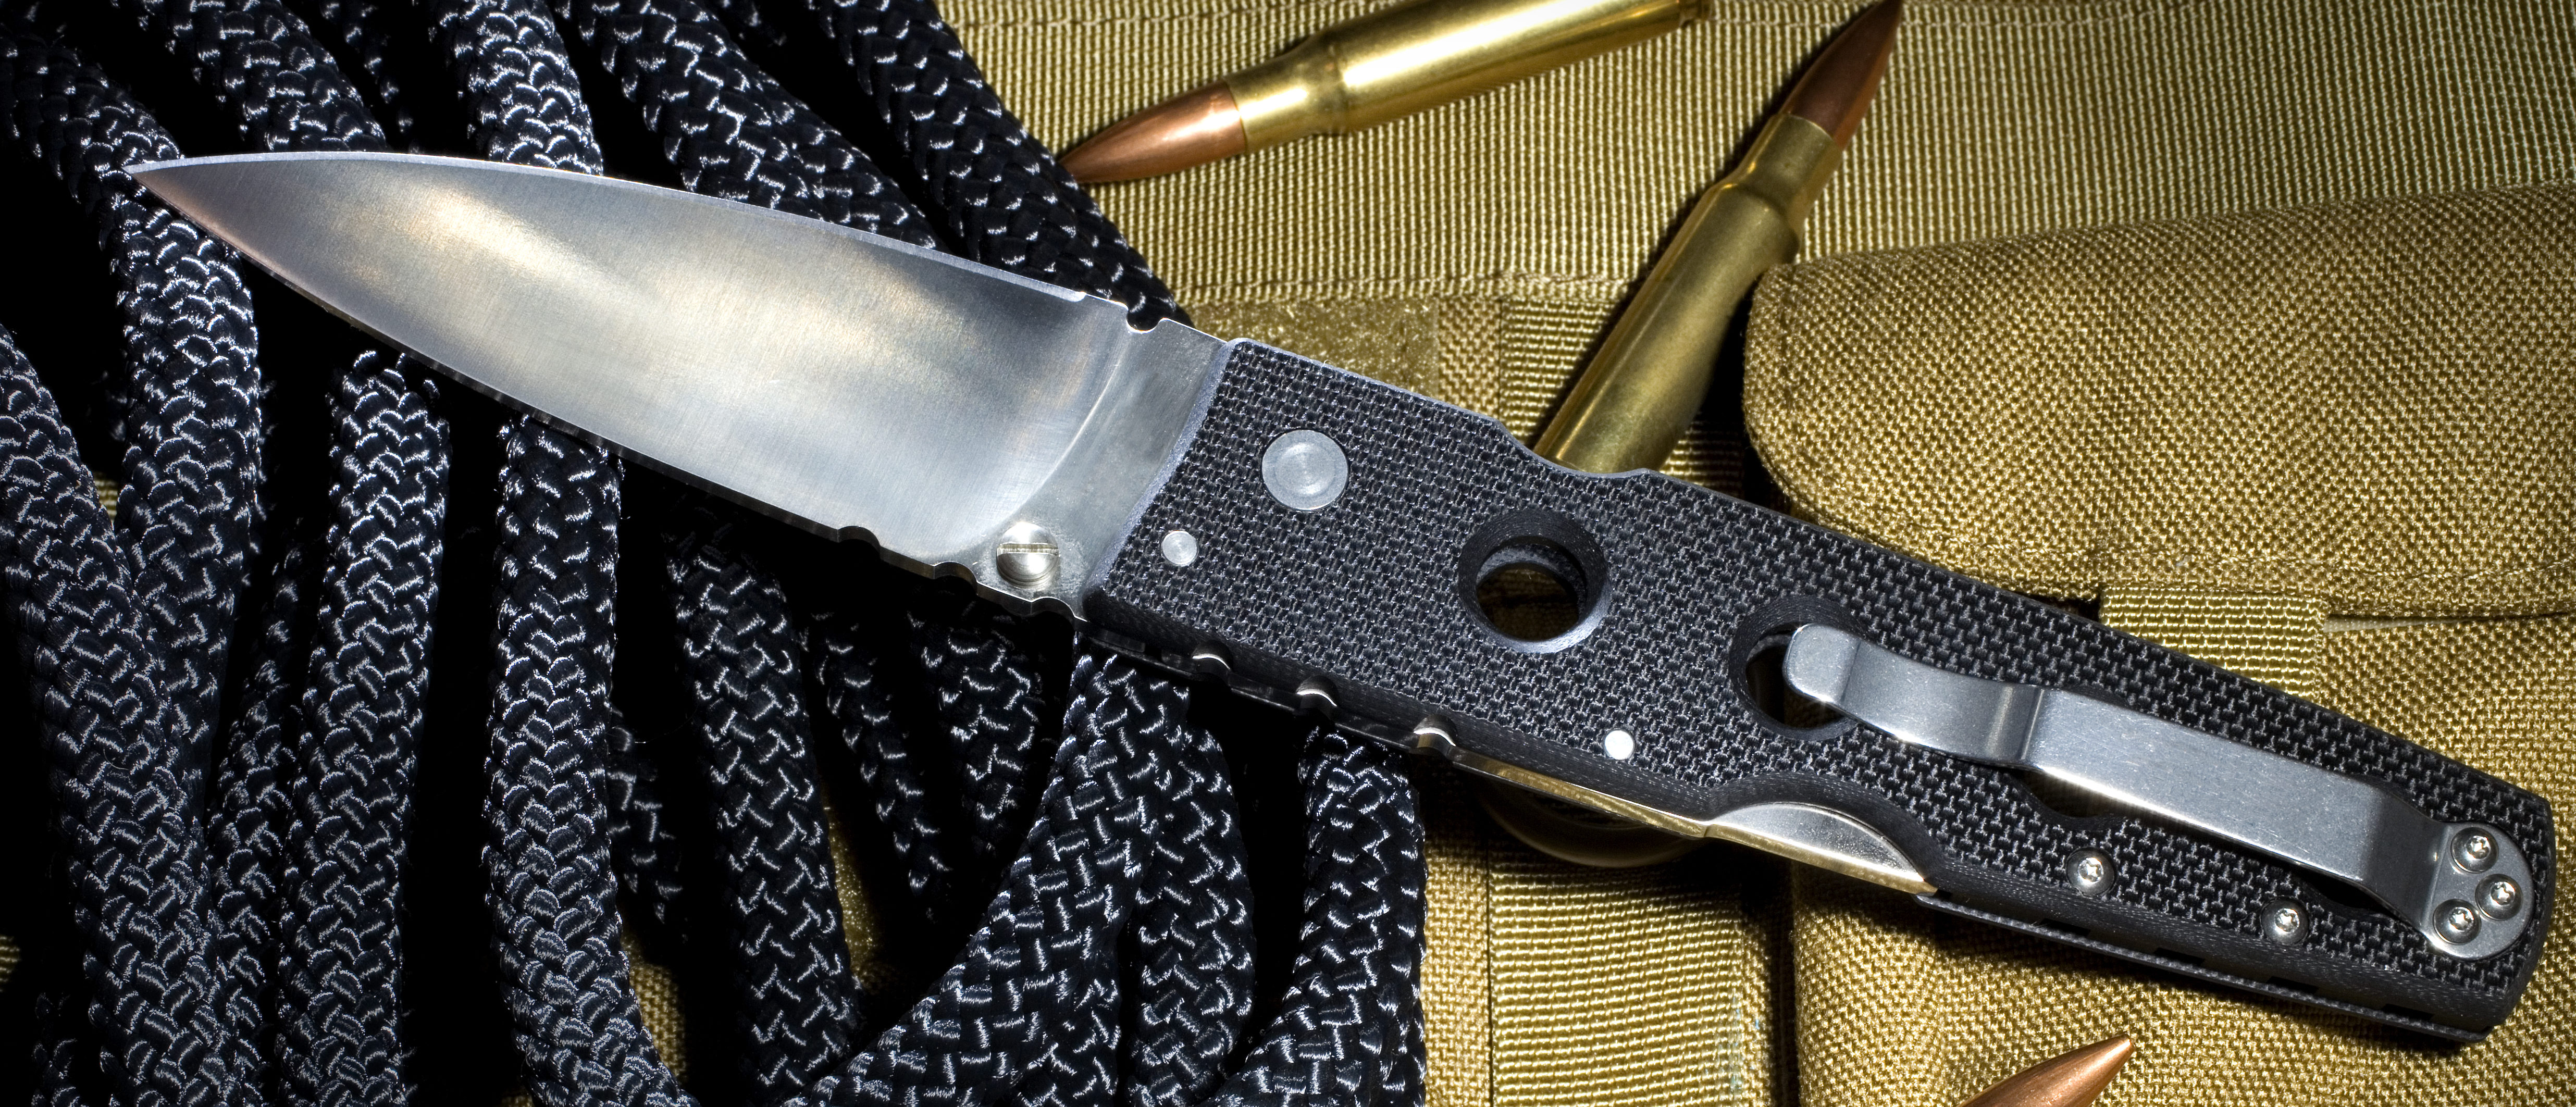 What Knife Would You Carry If You Didn't Have A Gun?